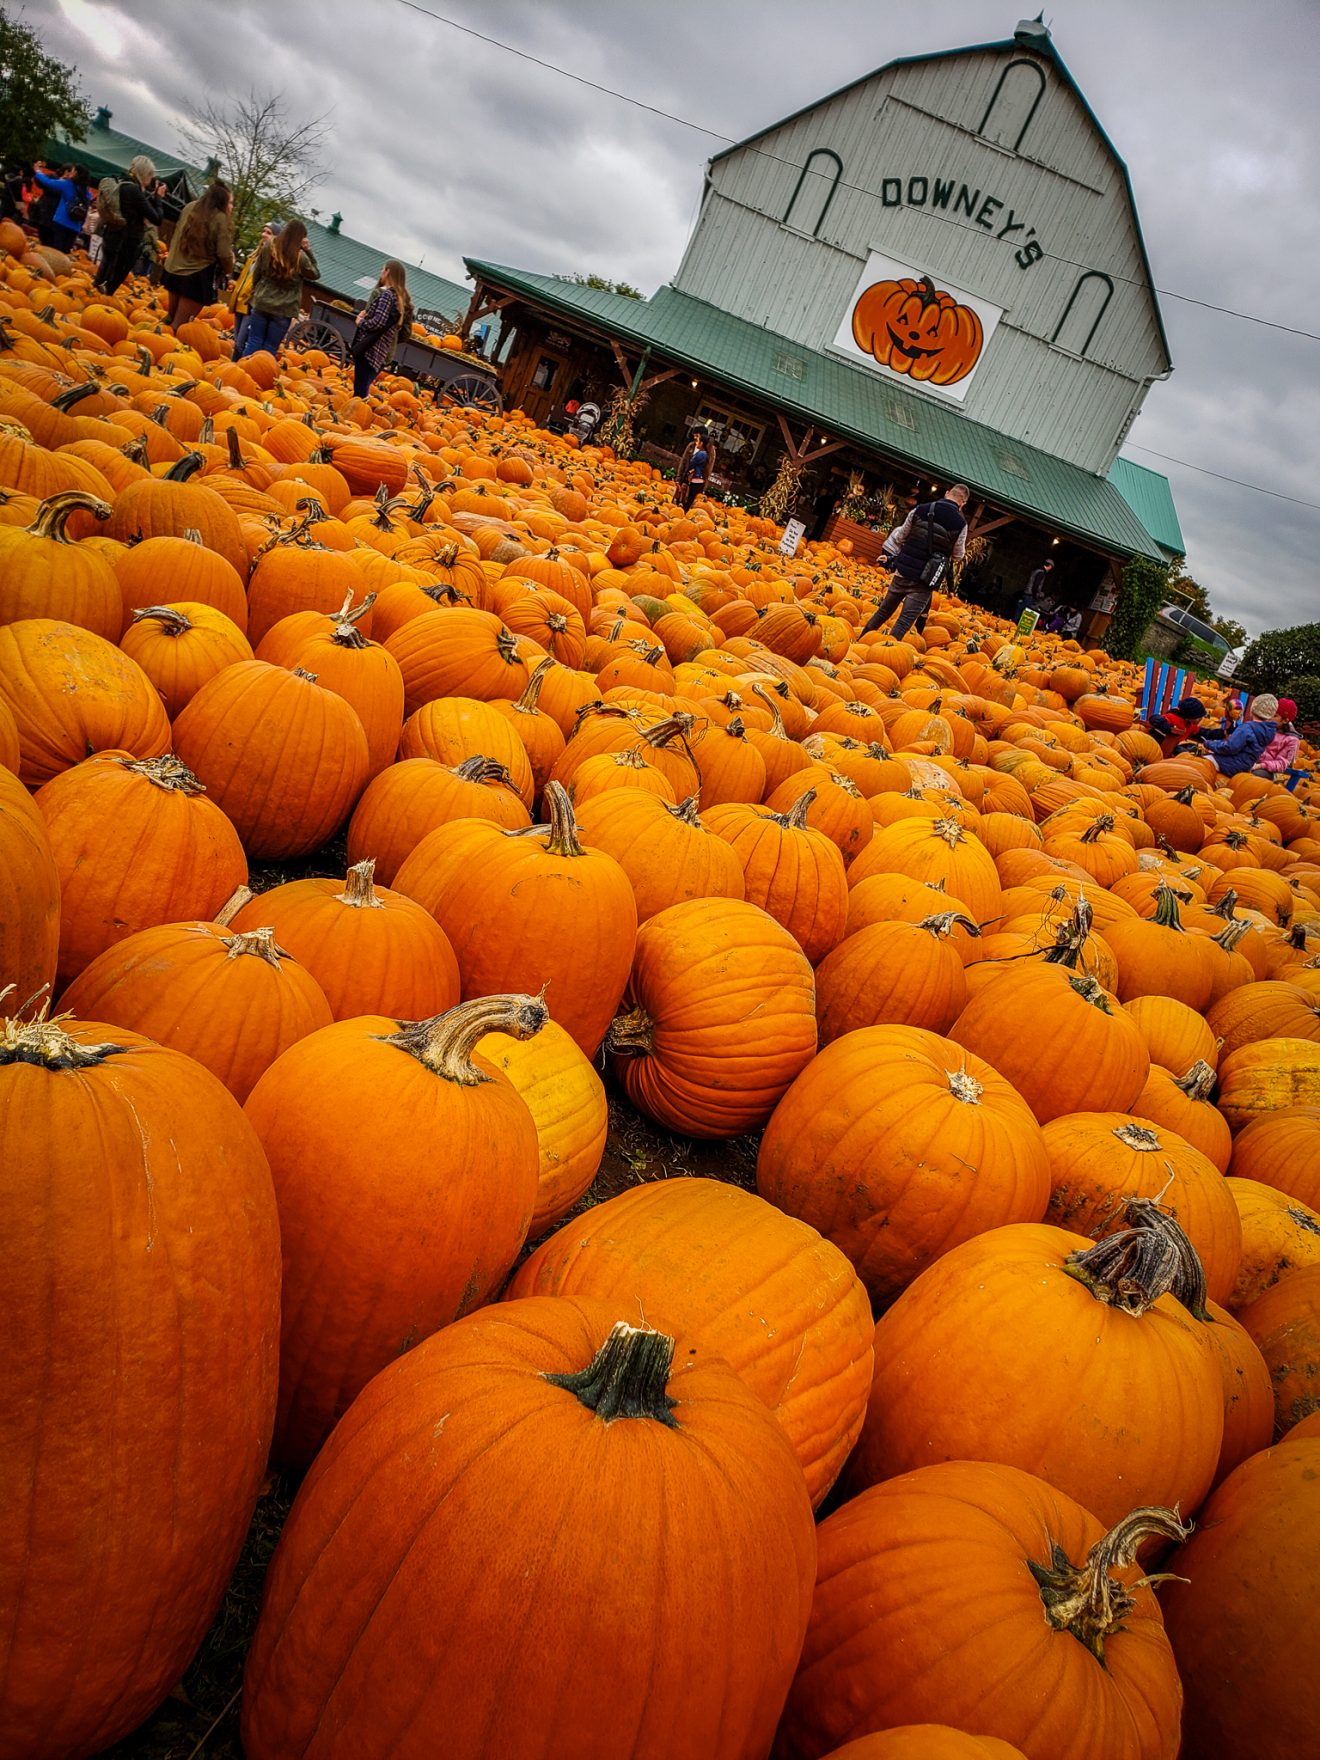 Downey's Farm | Pumpkin Patch